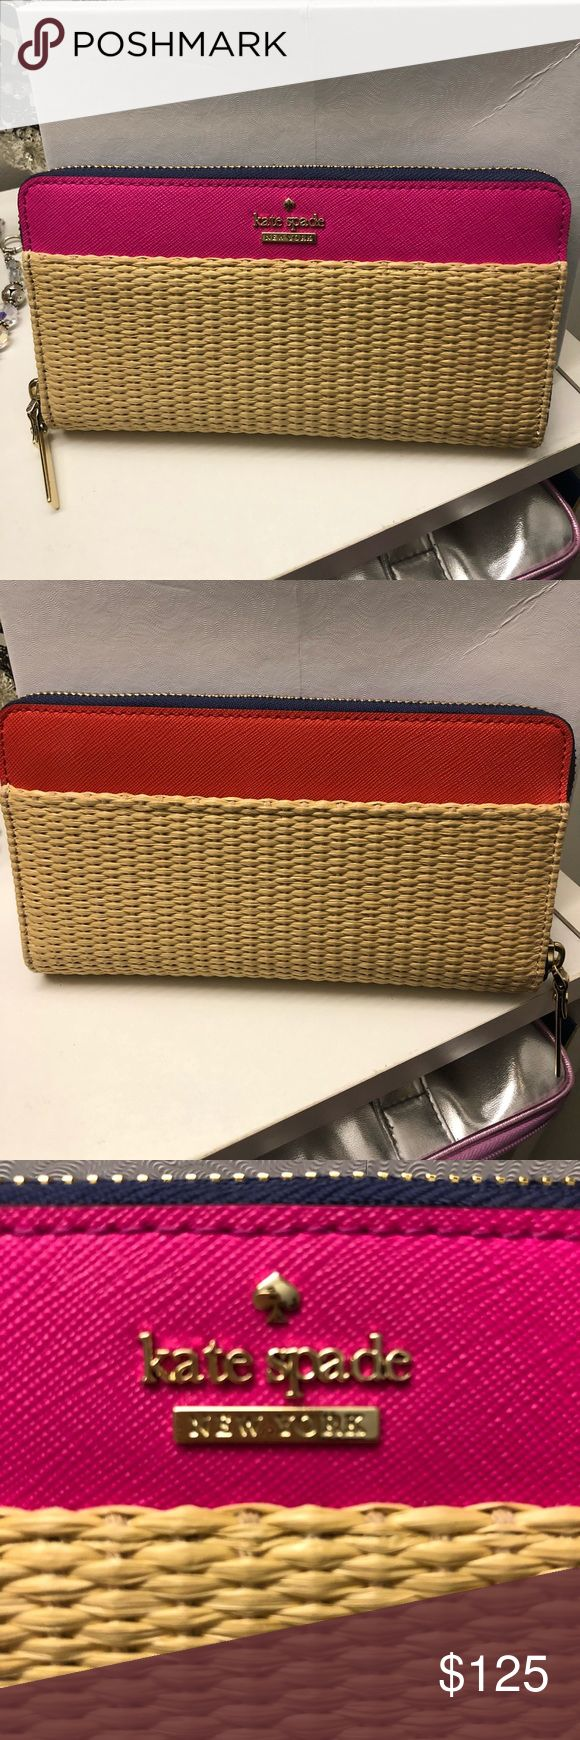 Brand New ♠️ Kate Spade  Wallet Fushia on one side and orange on the other. Striped blue and white inside. Purchase from Nordstrom not Outlet Merchandise. Brand New kate spade Bags Wallets